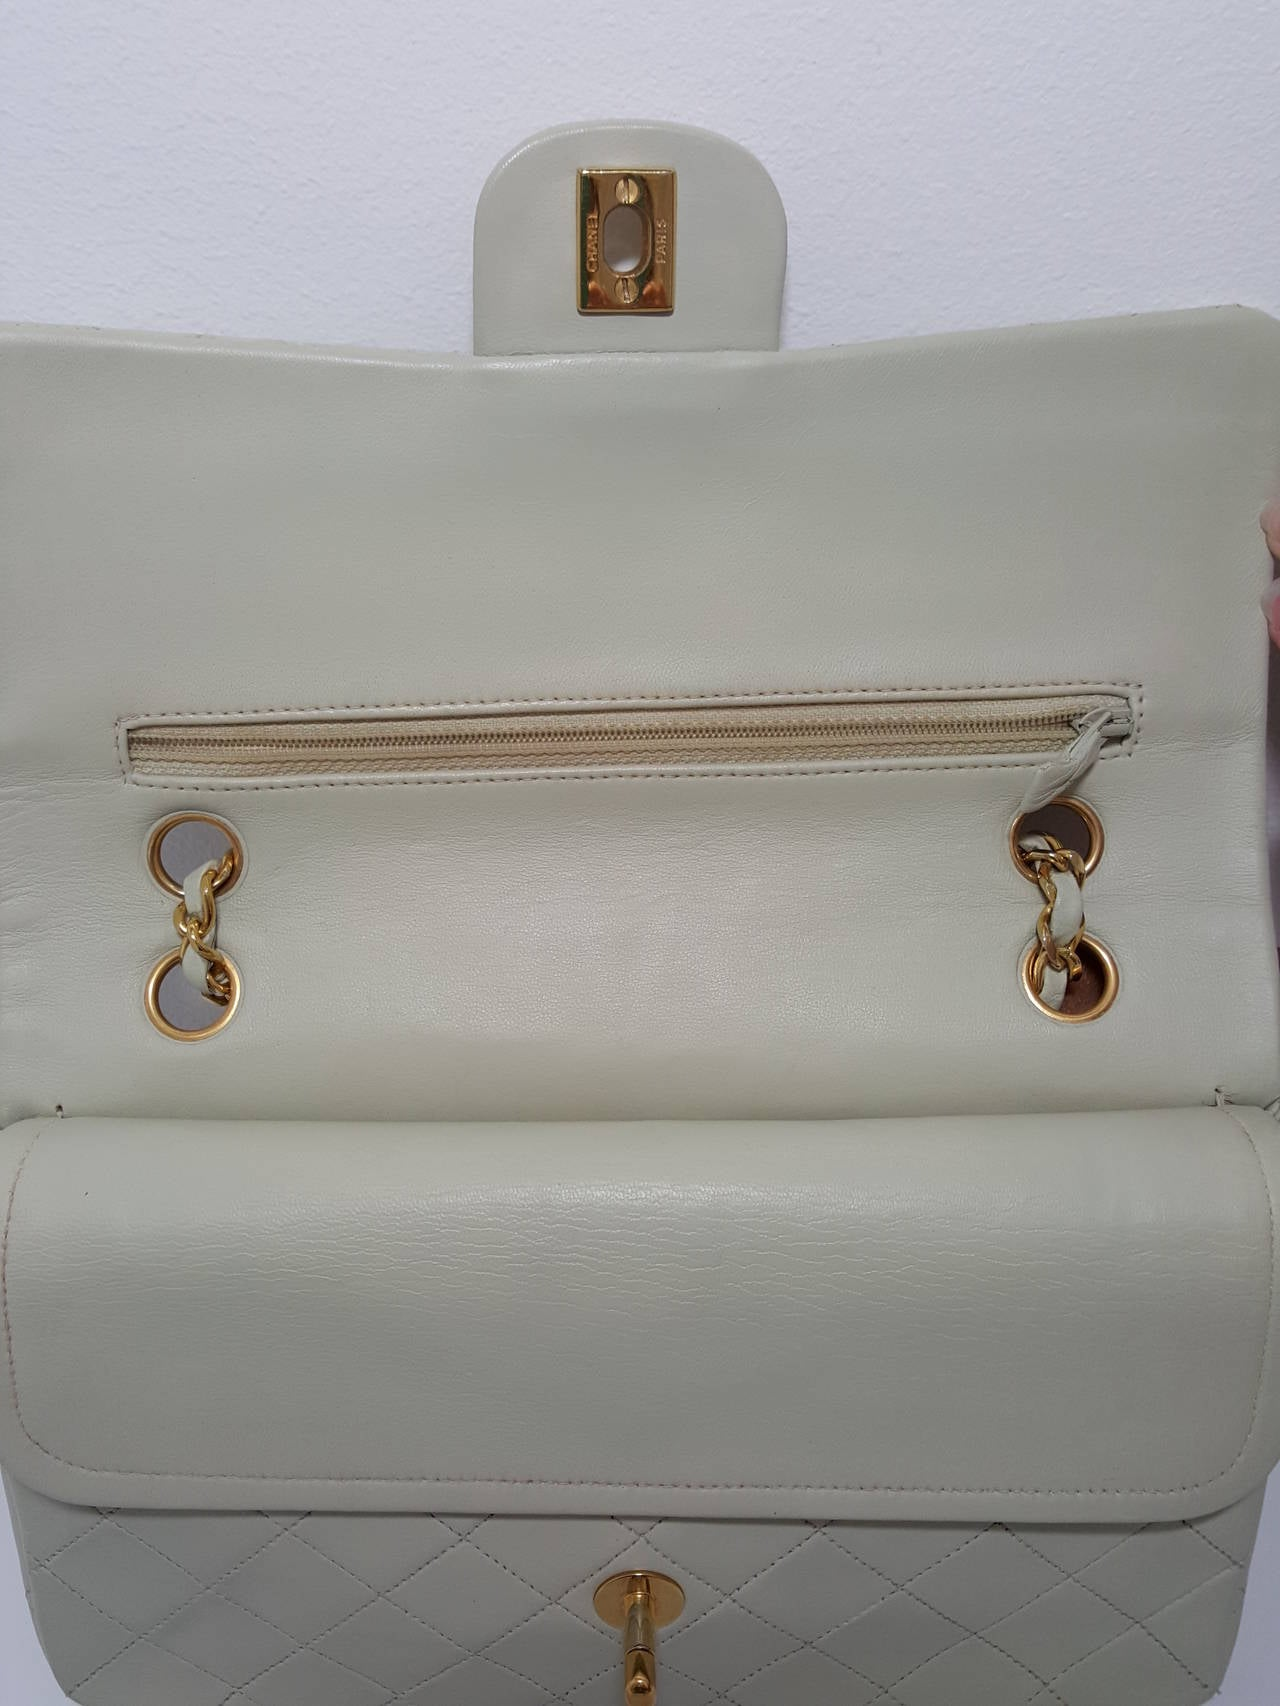 Lovely Vintage Cream Chanel Double Flap Classic with Gold Hardware. 5